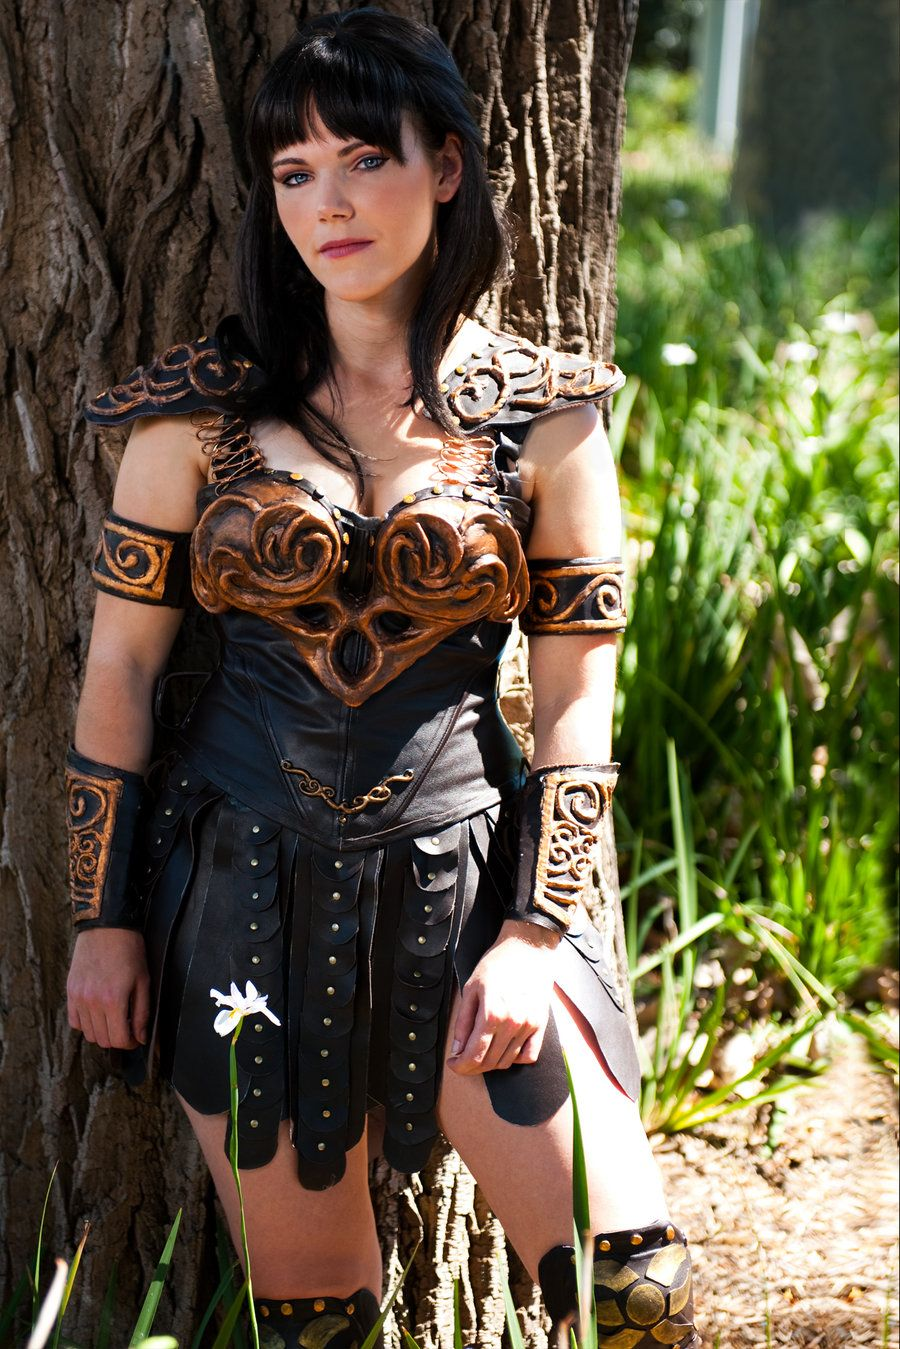 Female warrior cosplay xenas novel pizza slicer though an female warrior cosplay xenas novel pizza slicer though an efficient tool never took solutioingenieria Image collections